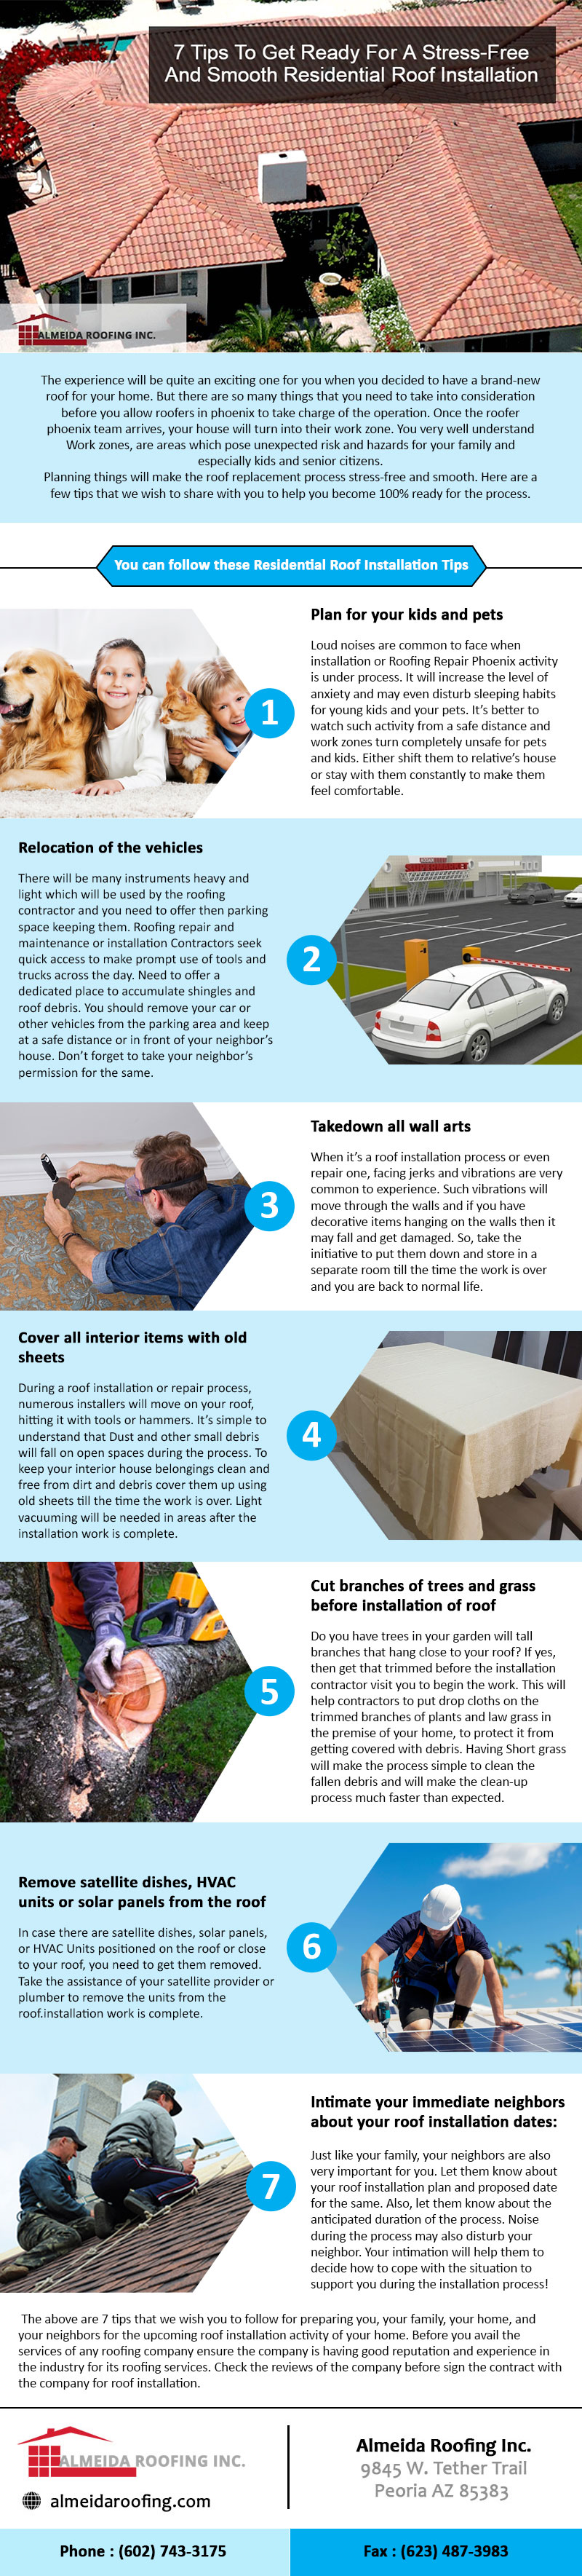 7 Tips To Get Ready For A Stress Free Roof Installation #infographic #Home Improvement